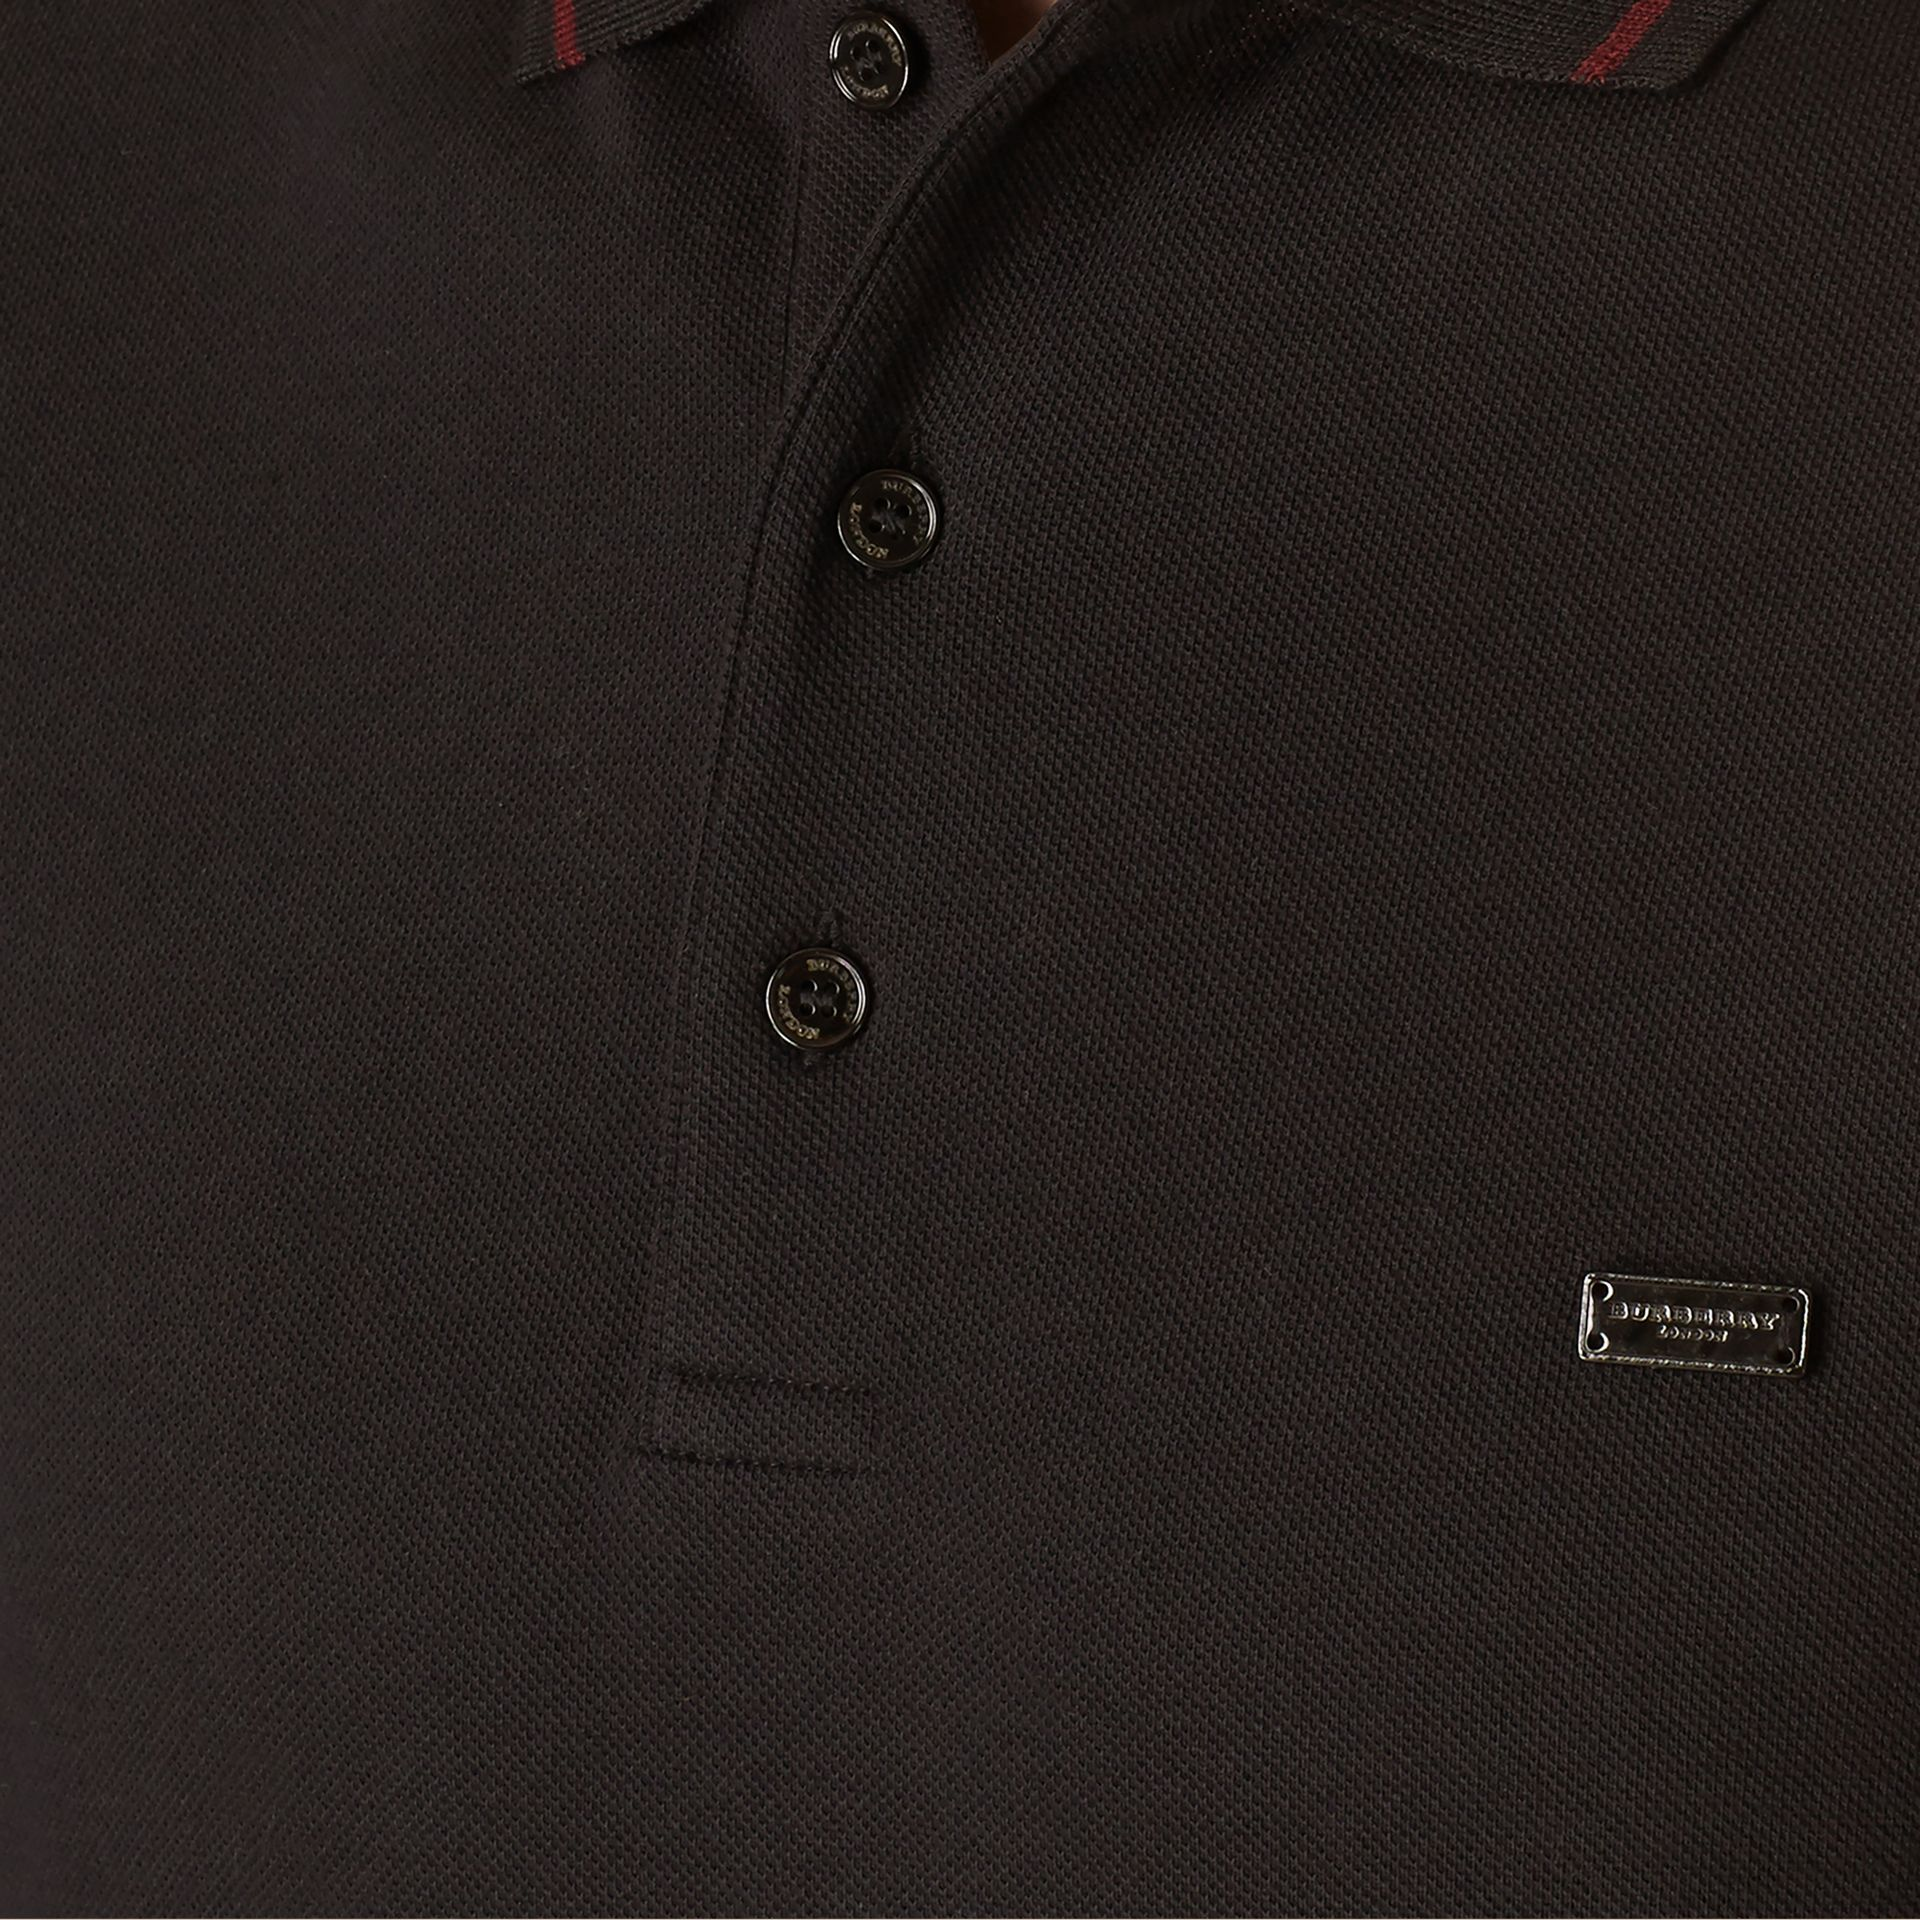 Black/mahogany red Contrast Tipping Cotton Piqué Polo Shirt Black/mahogany Red - gallery image 2